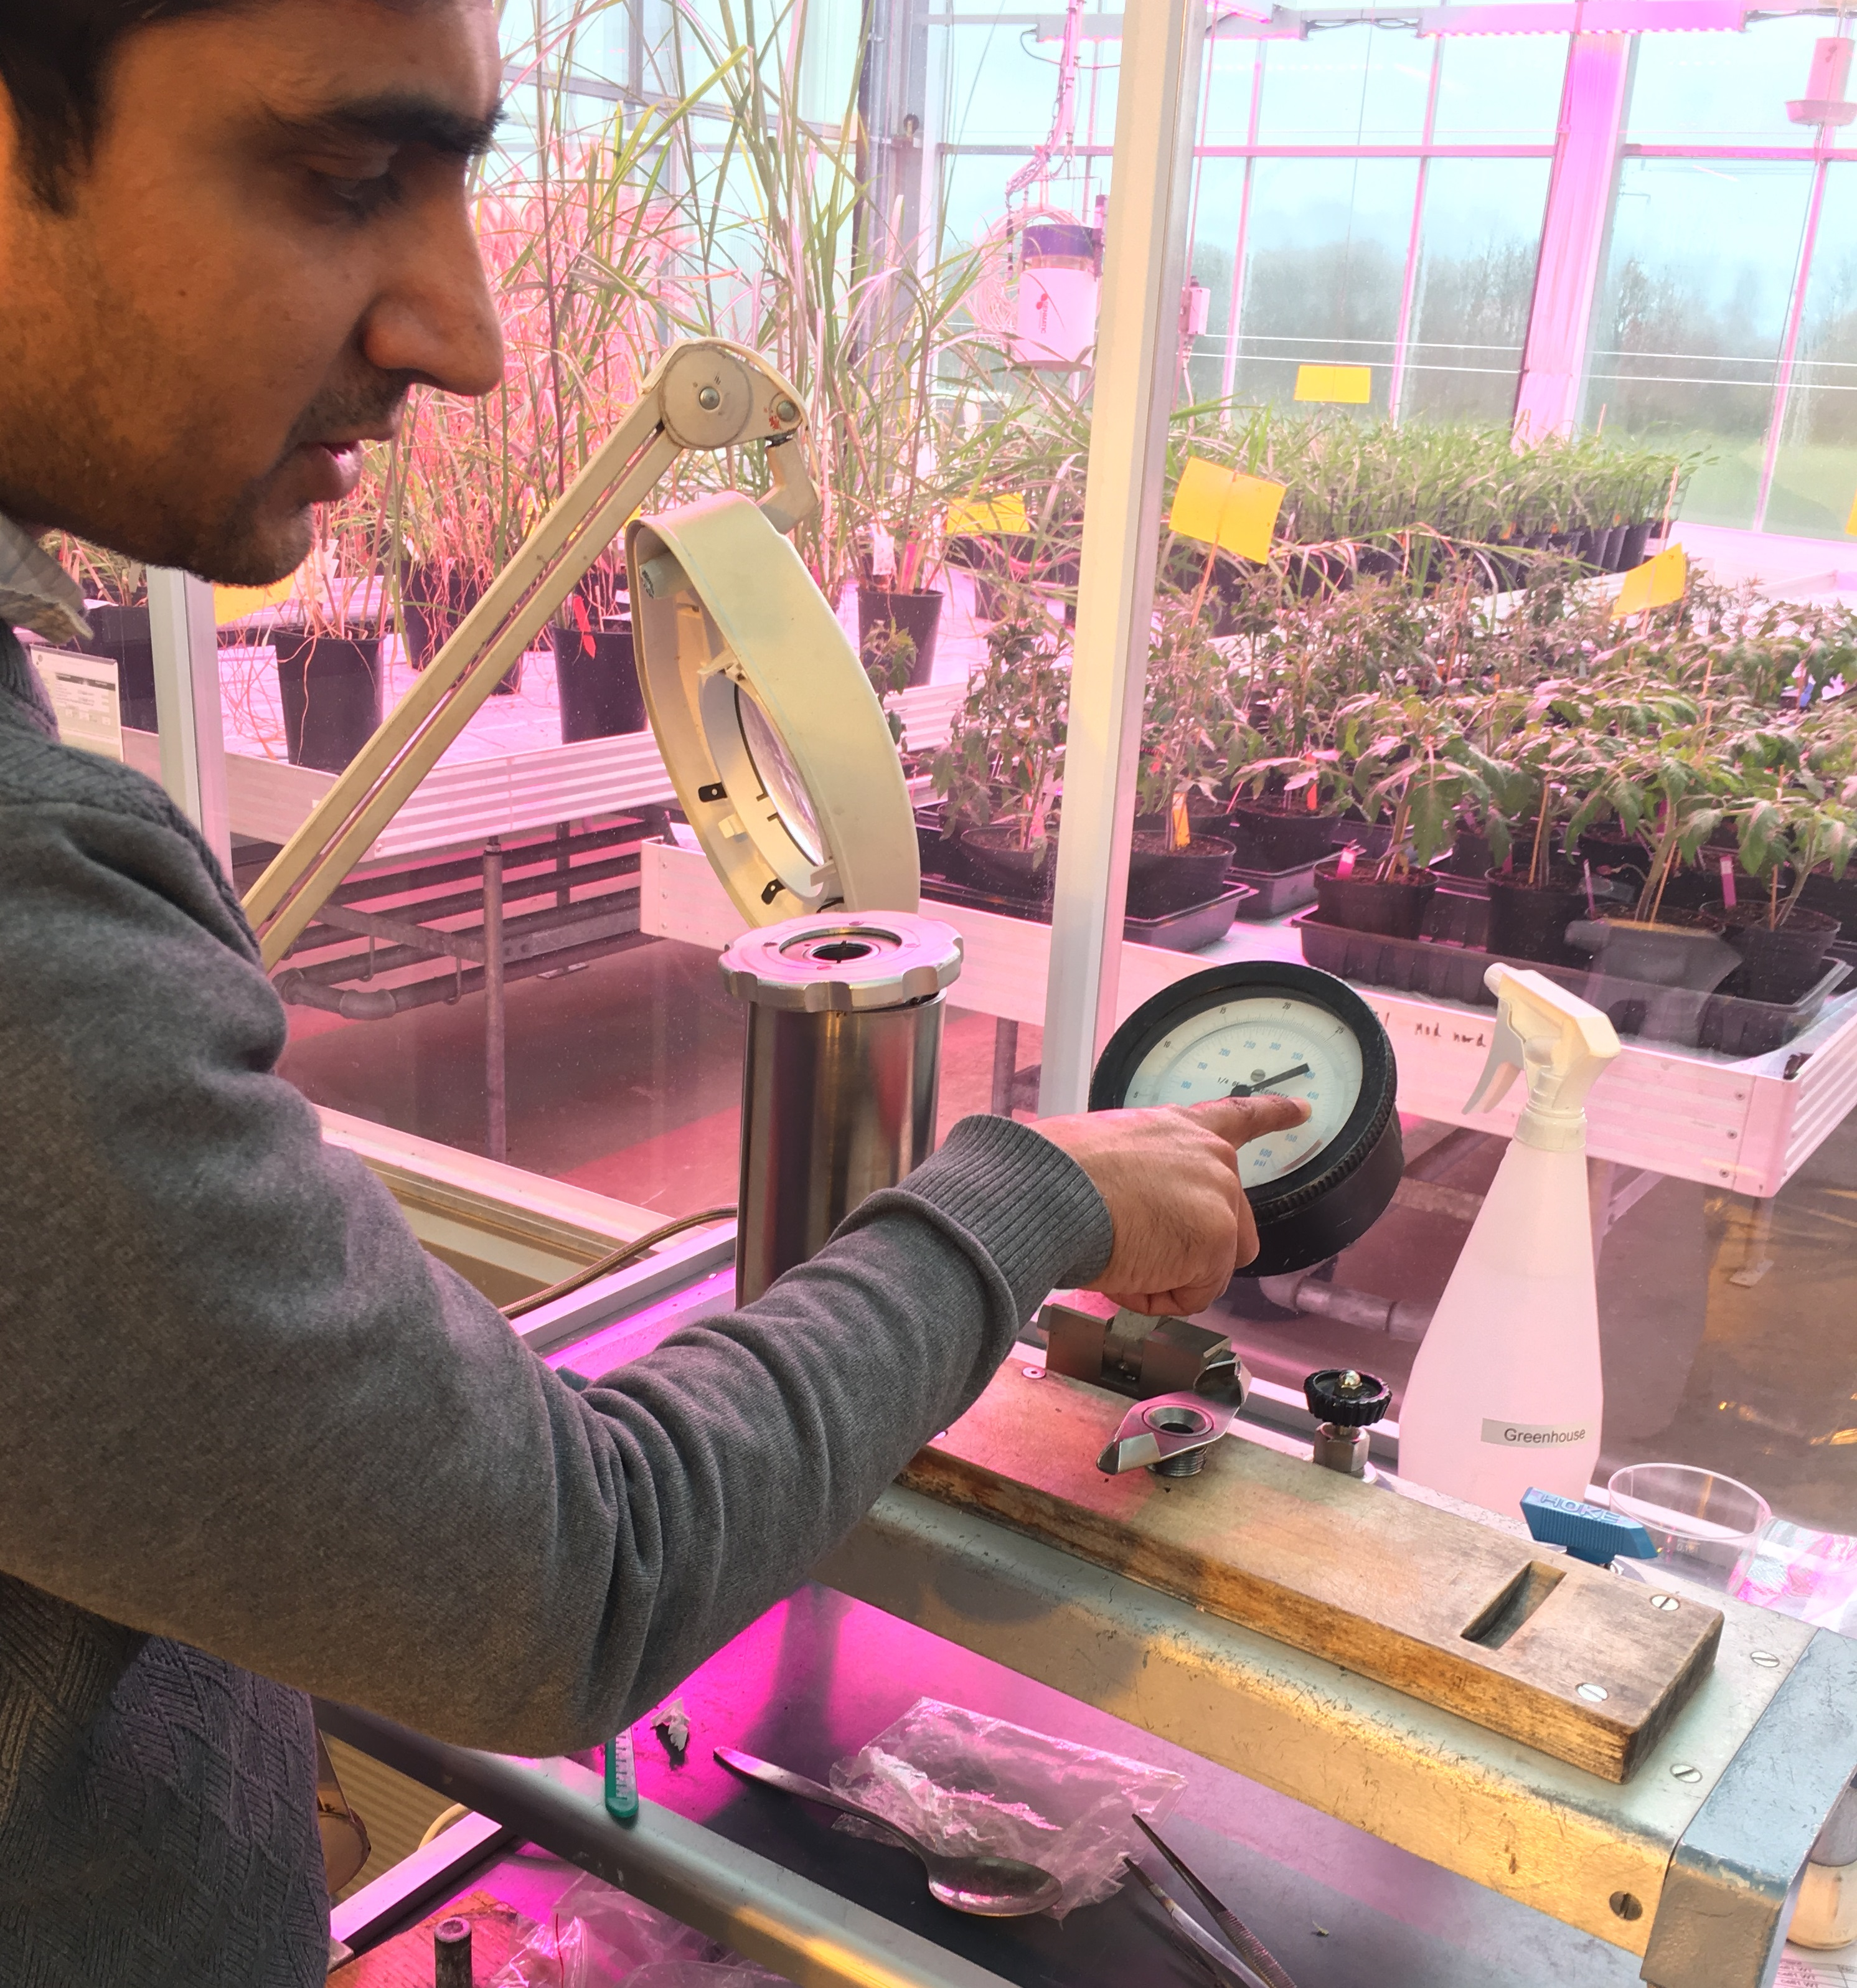 /admin/science-sites/projekter/development/development-news/news/pictures/Sajid_Shokat_shows_the_measuring_instruments_used_in_his_experiments.jpg